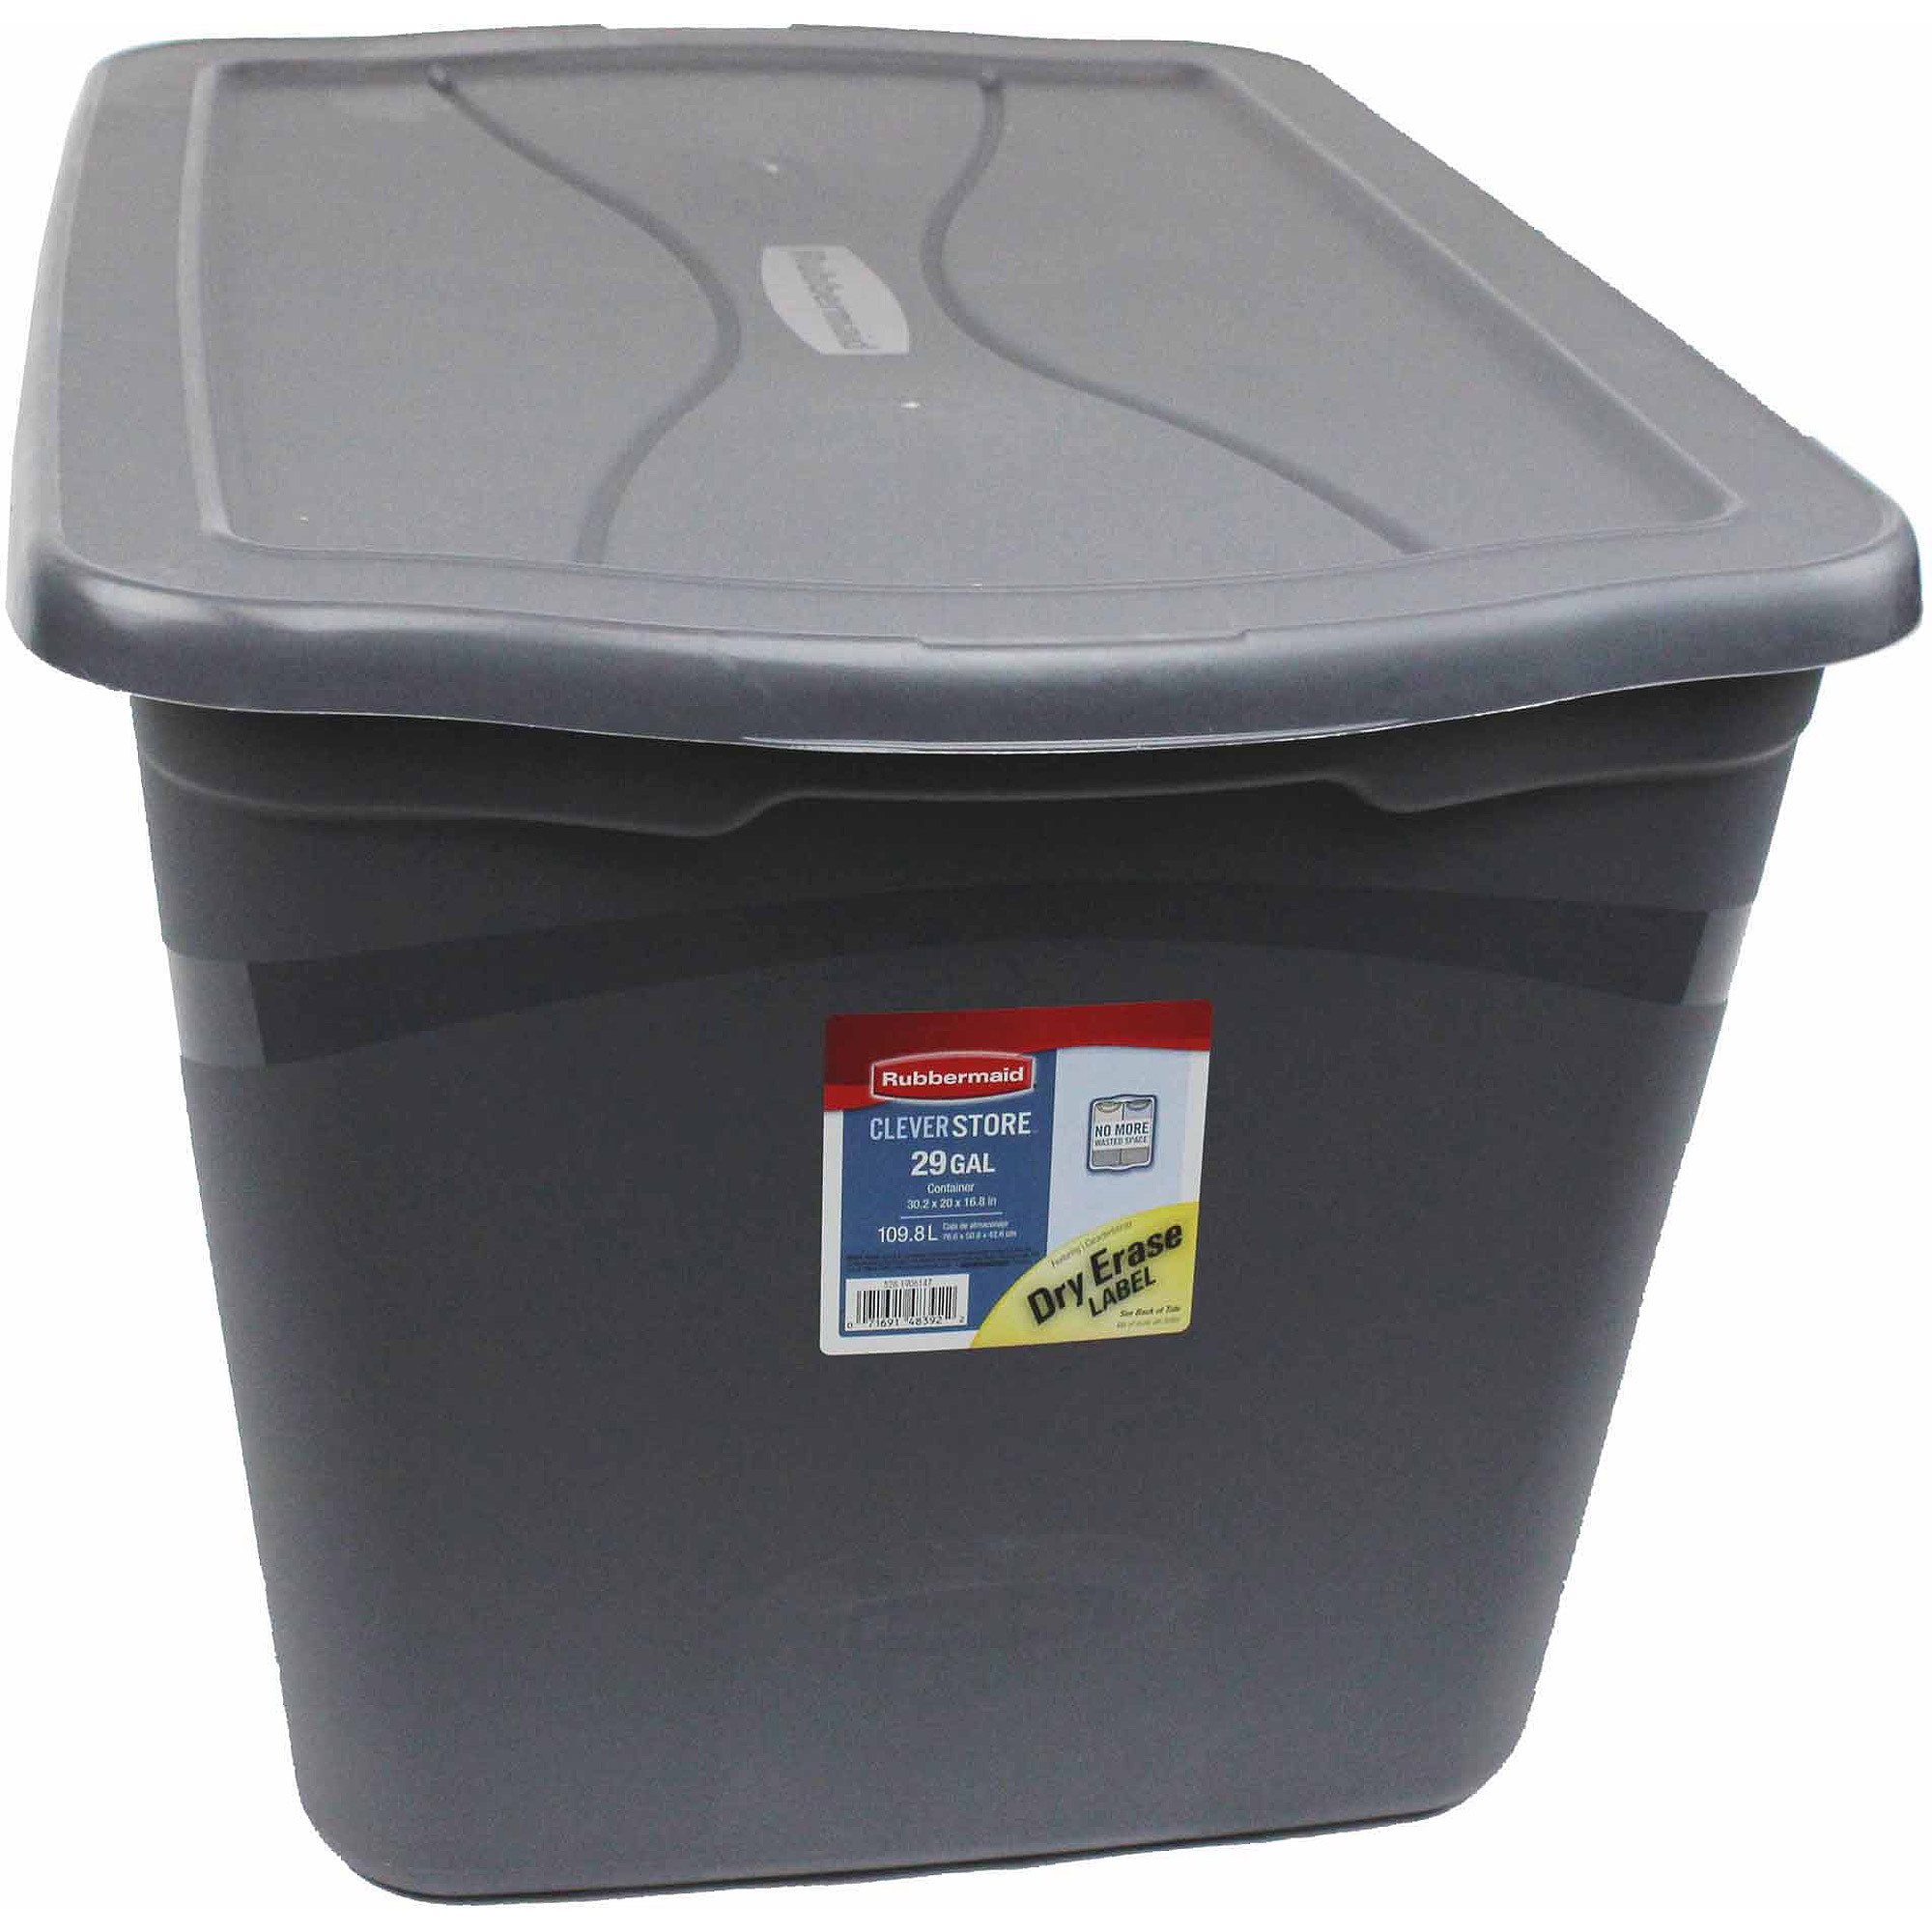 Rubbermaid Clever Store Tote, 29 Gal., Gray